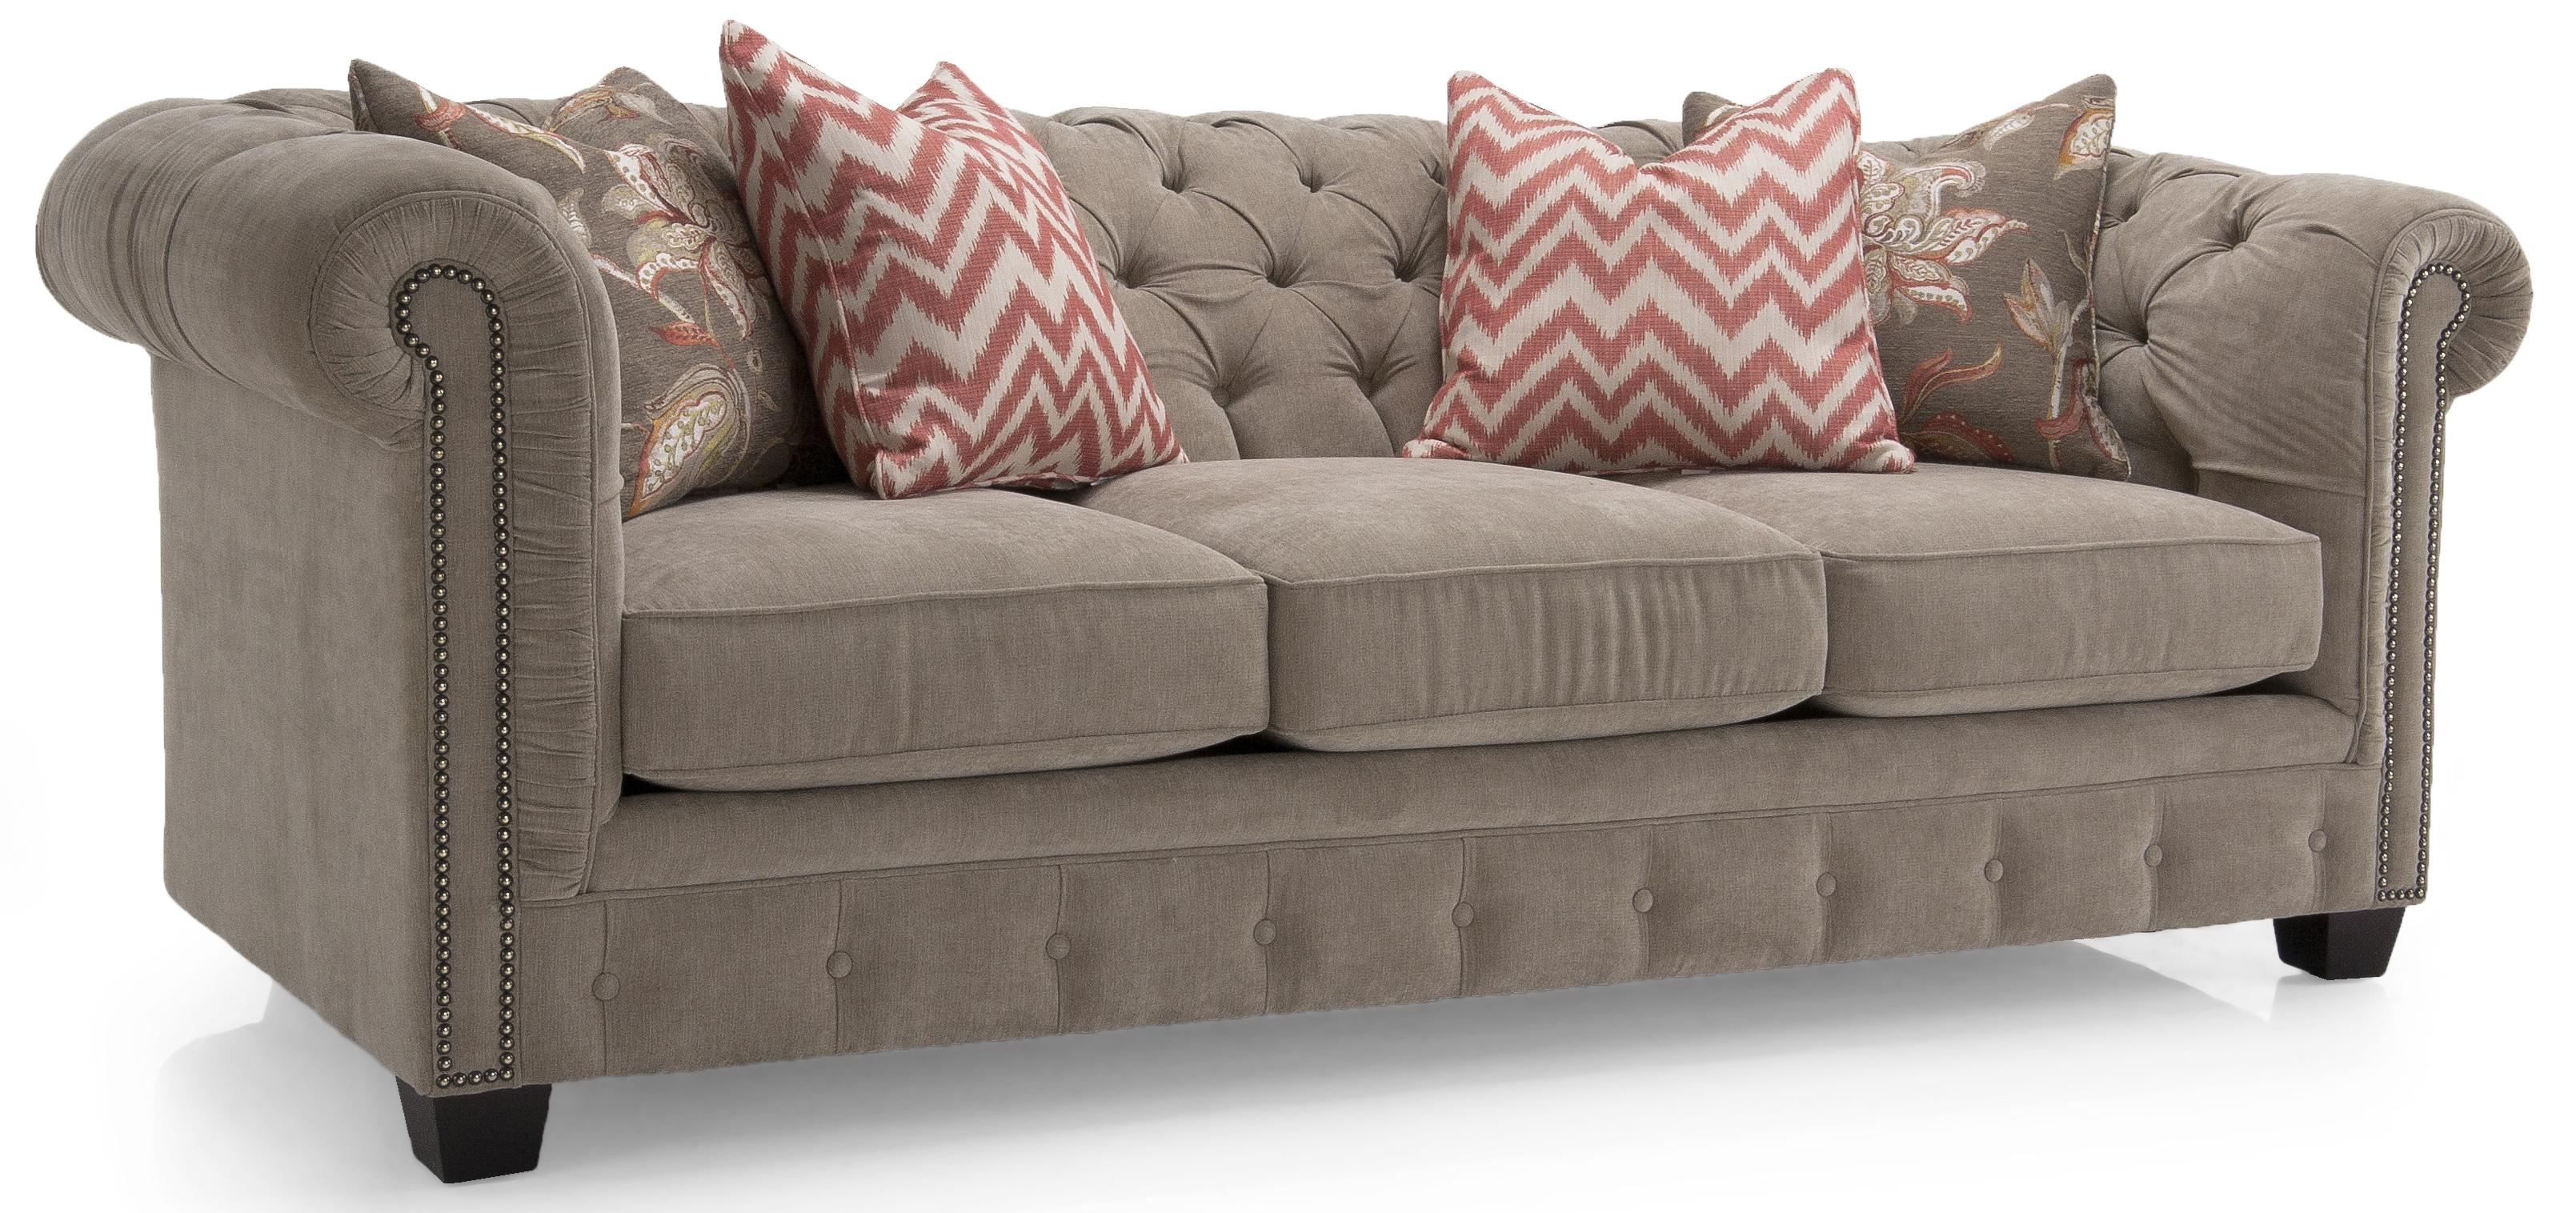 2230 Series Sofa by Decor-Rest at Rooms for Less